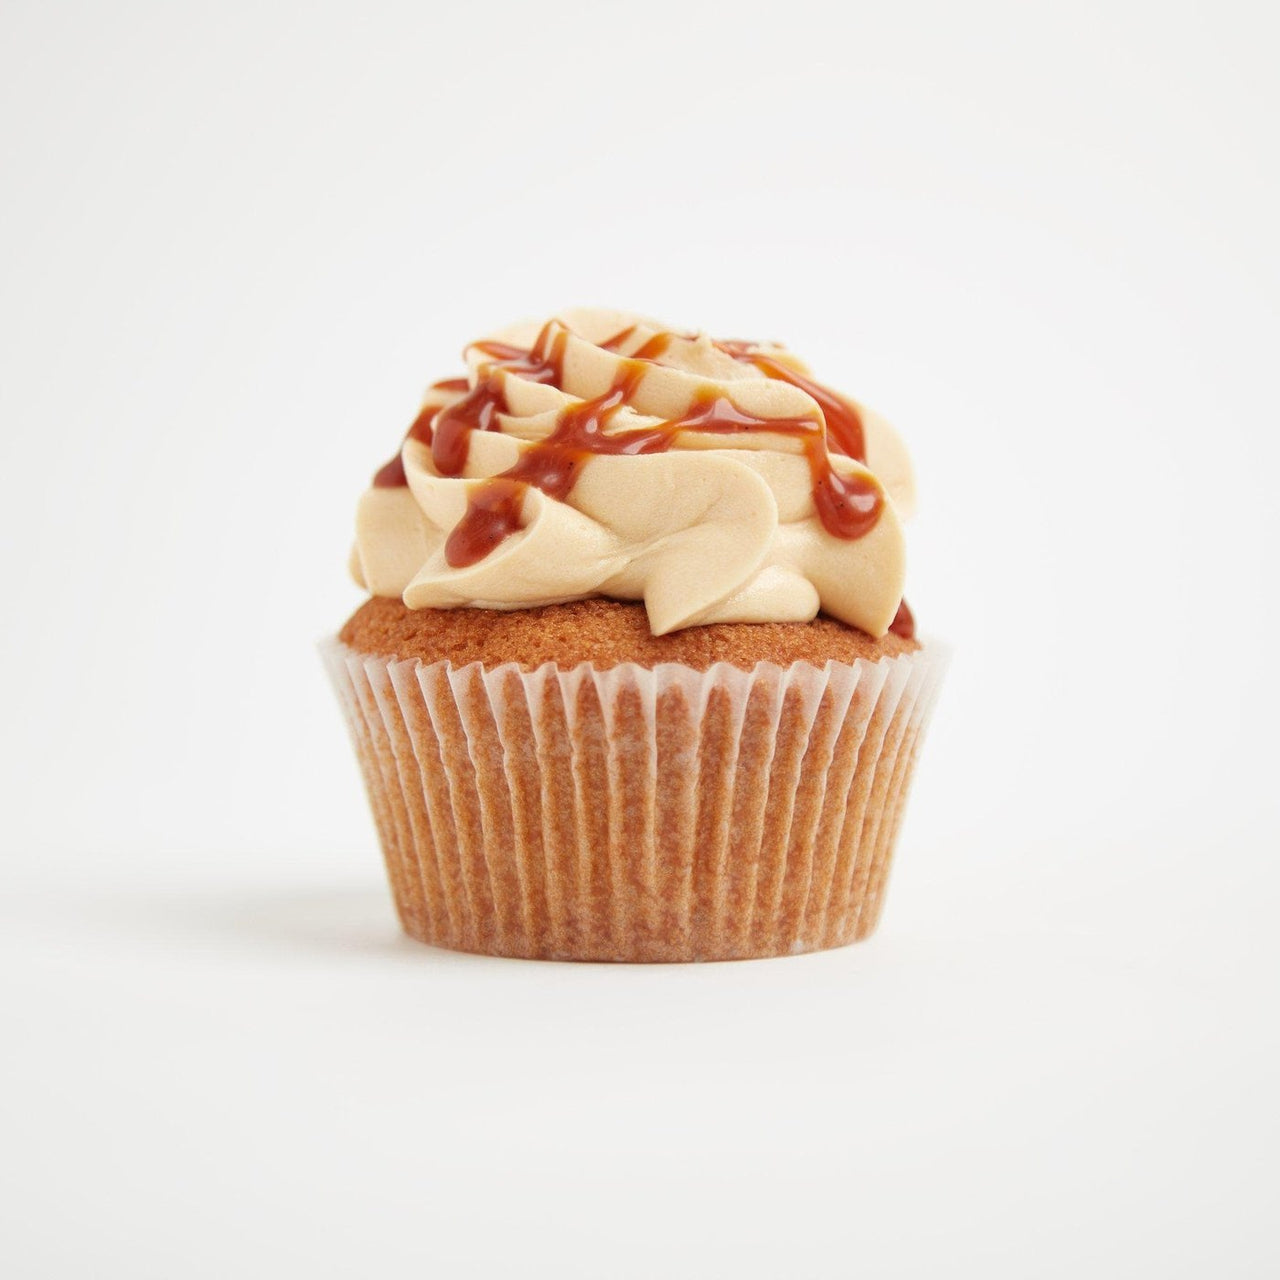 Gluten-Free Salted Caramel Cupcakes by Crumbs & Doilies